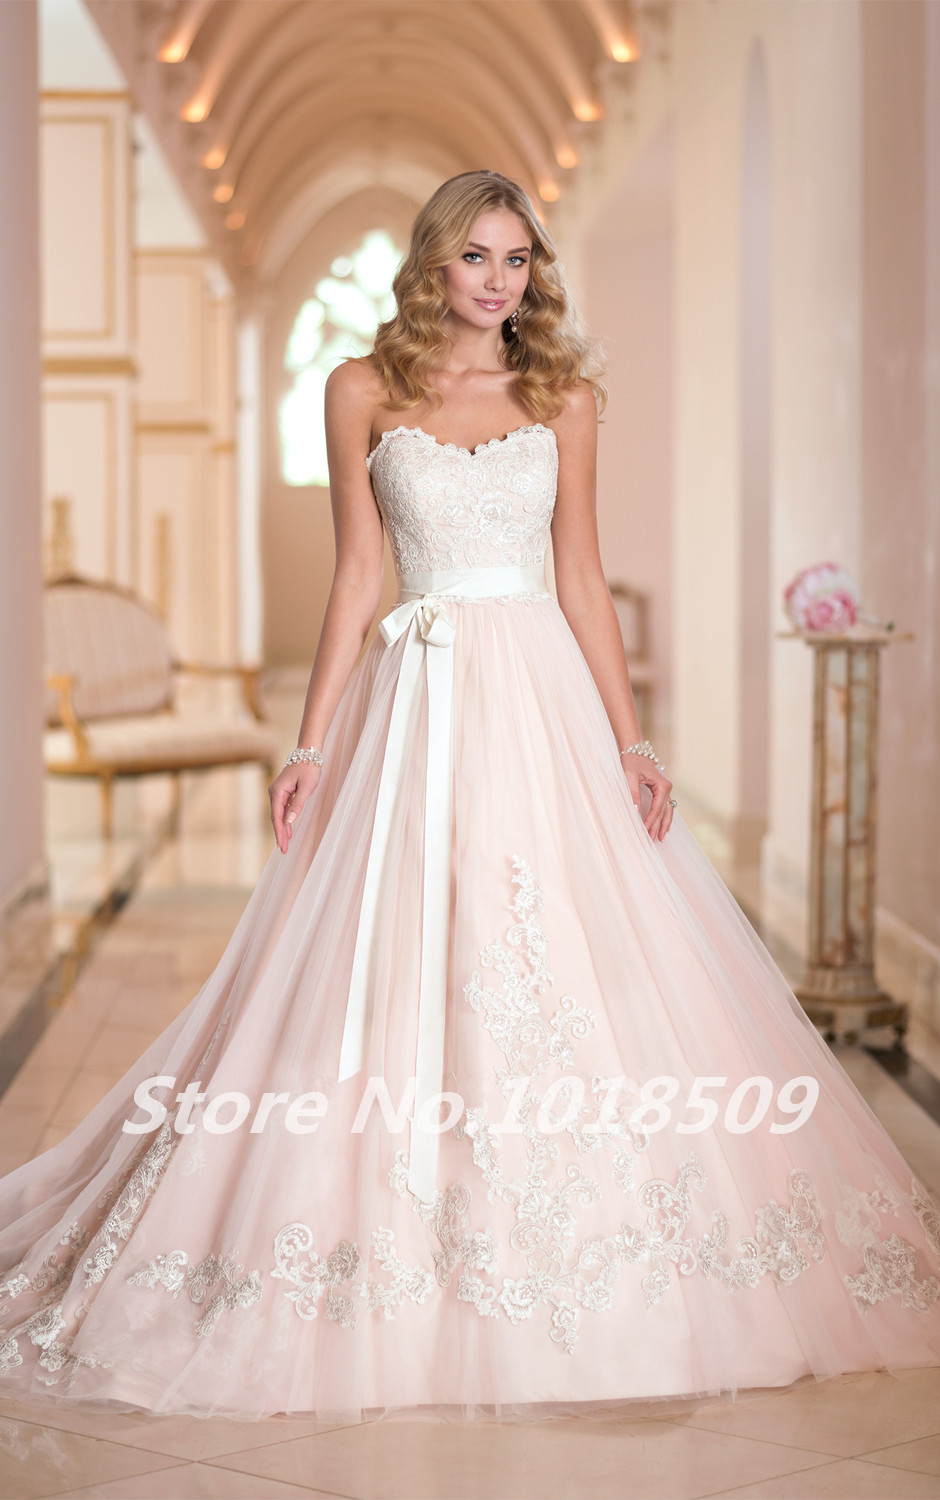 Ball bridal Gown Sweetheart Lace appliques Luxurious Sash Girl Vintage Sexy Sash 2018 New Arrival mother of the bride dresses